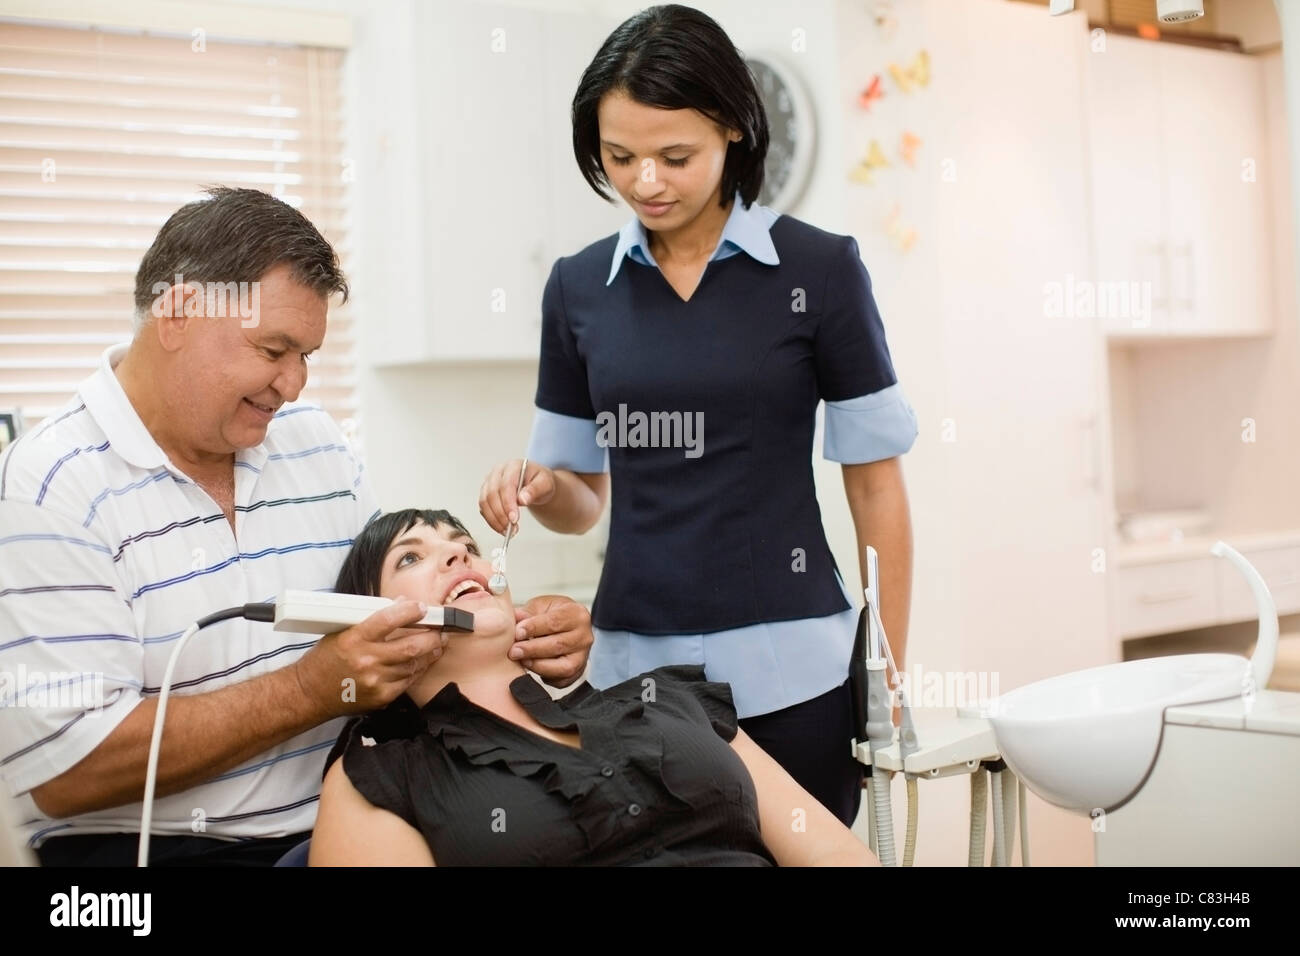 Dentist and assistant working on woman - Stock Image